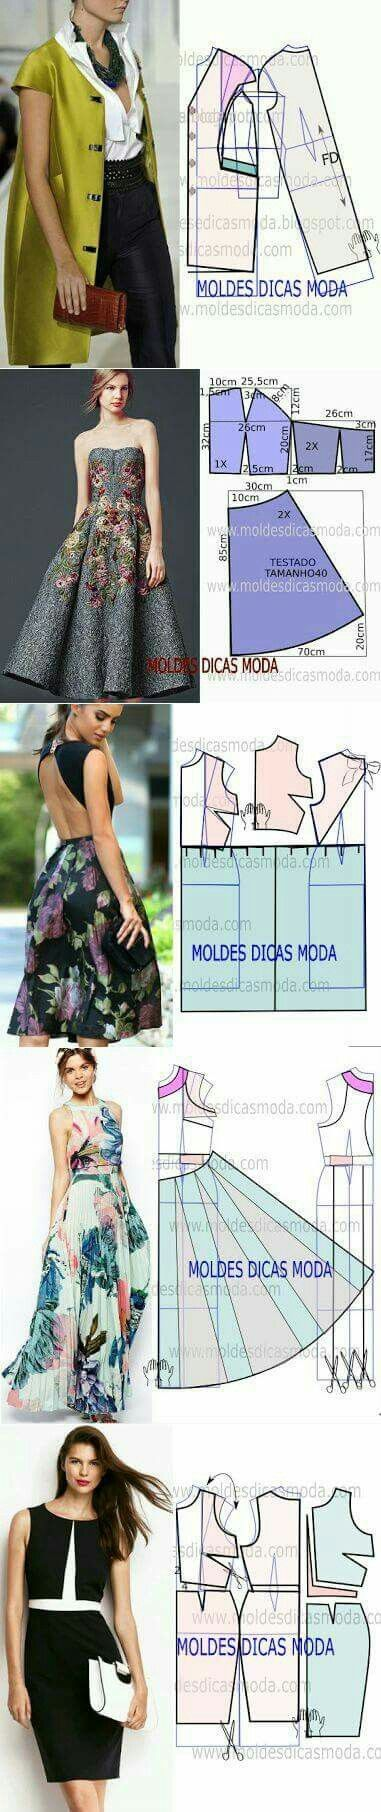 83 best Patrones images on Pinterest | Sewing patterns, Factory ...